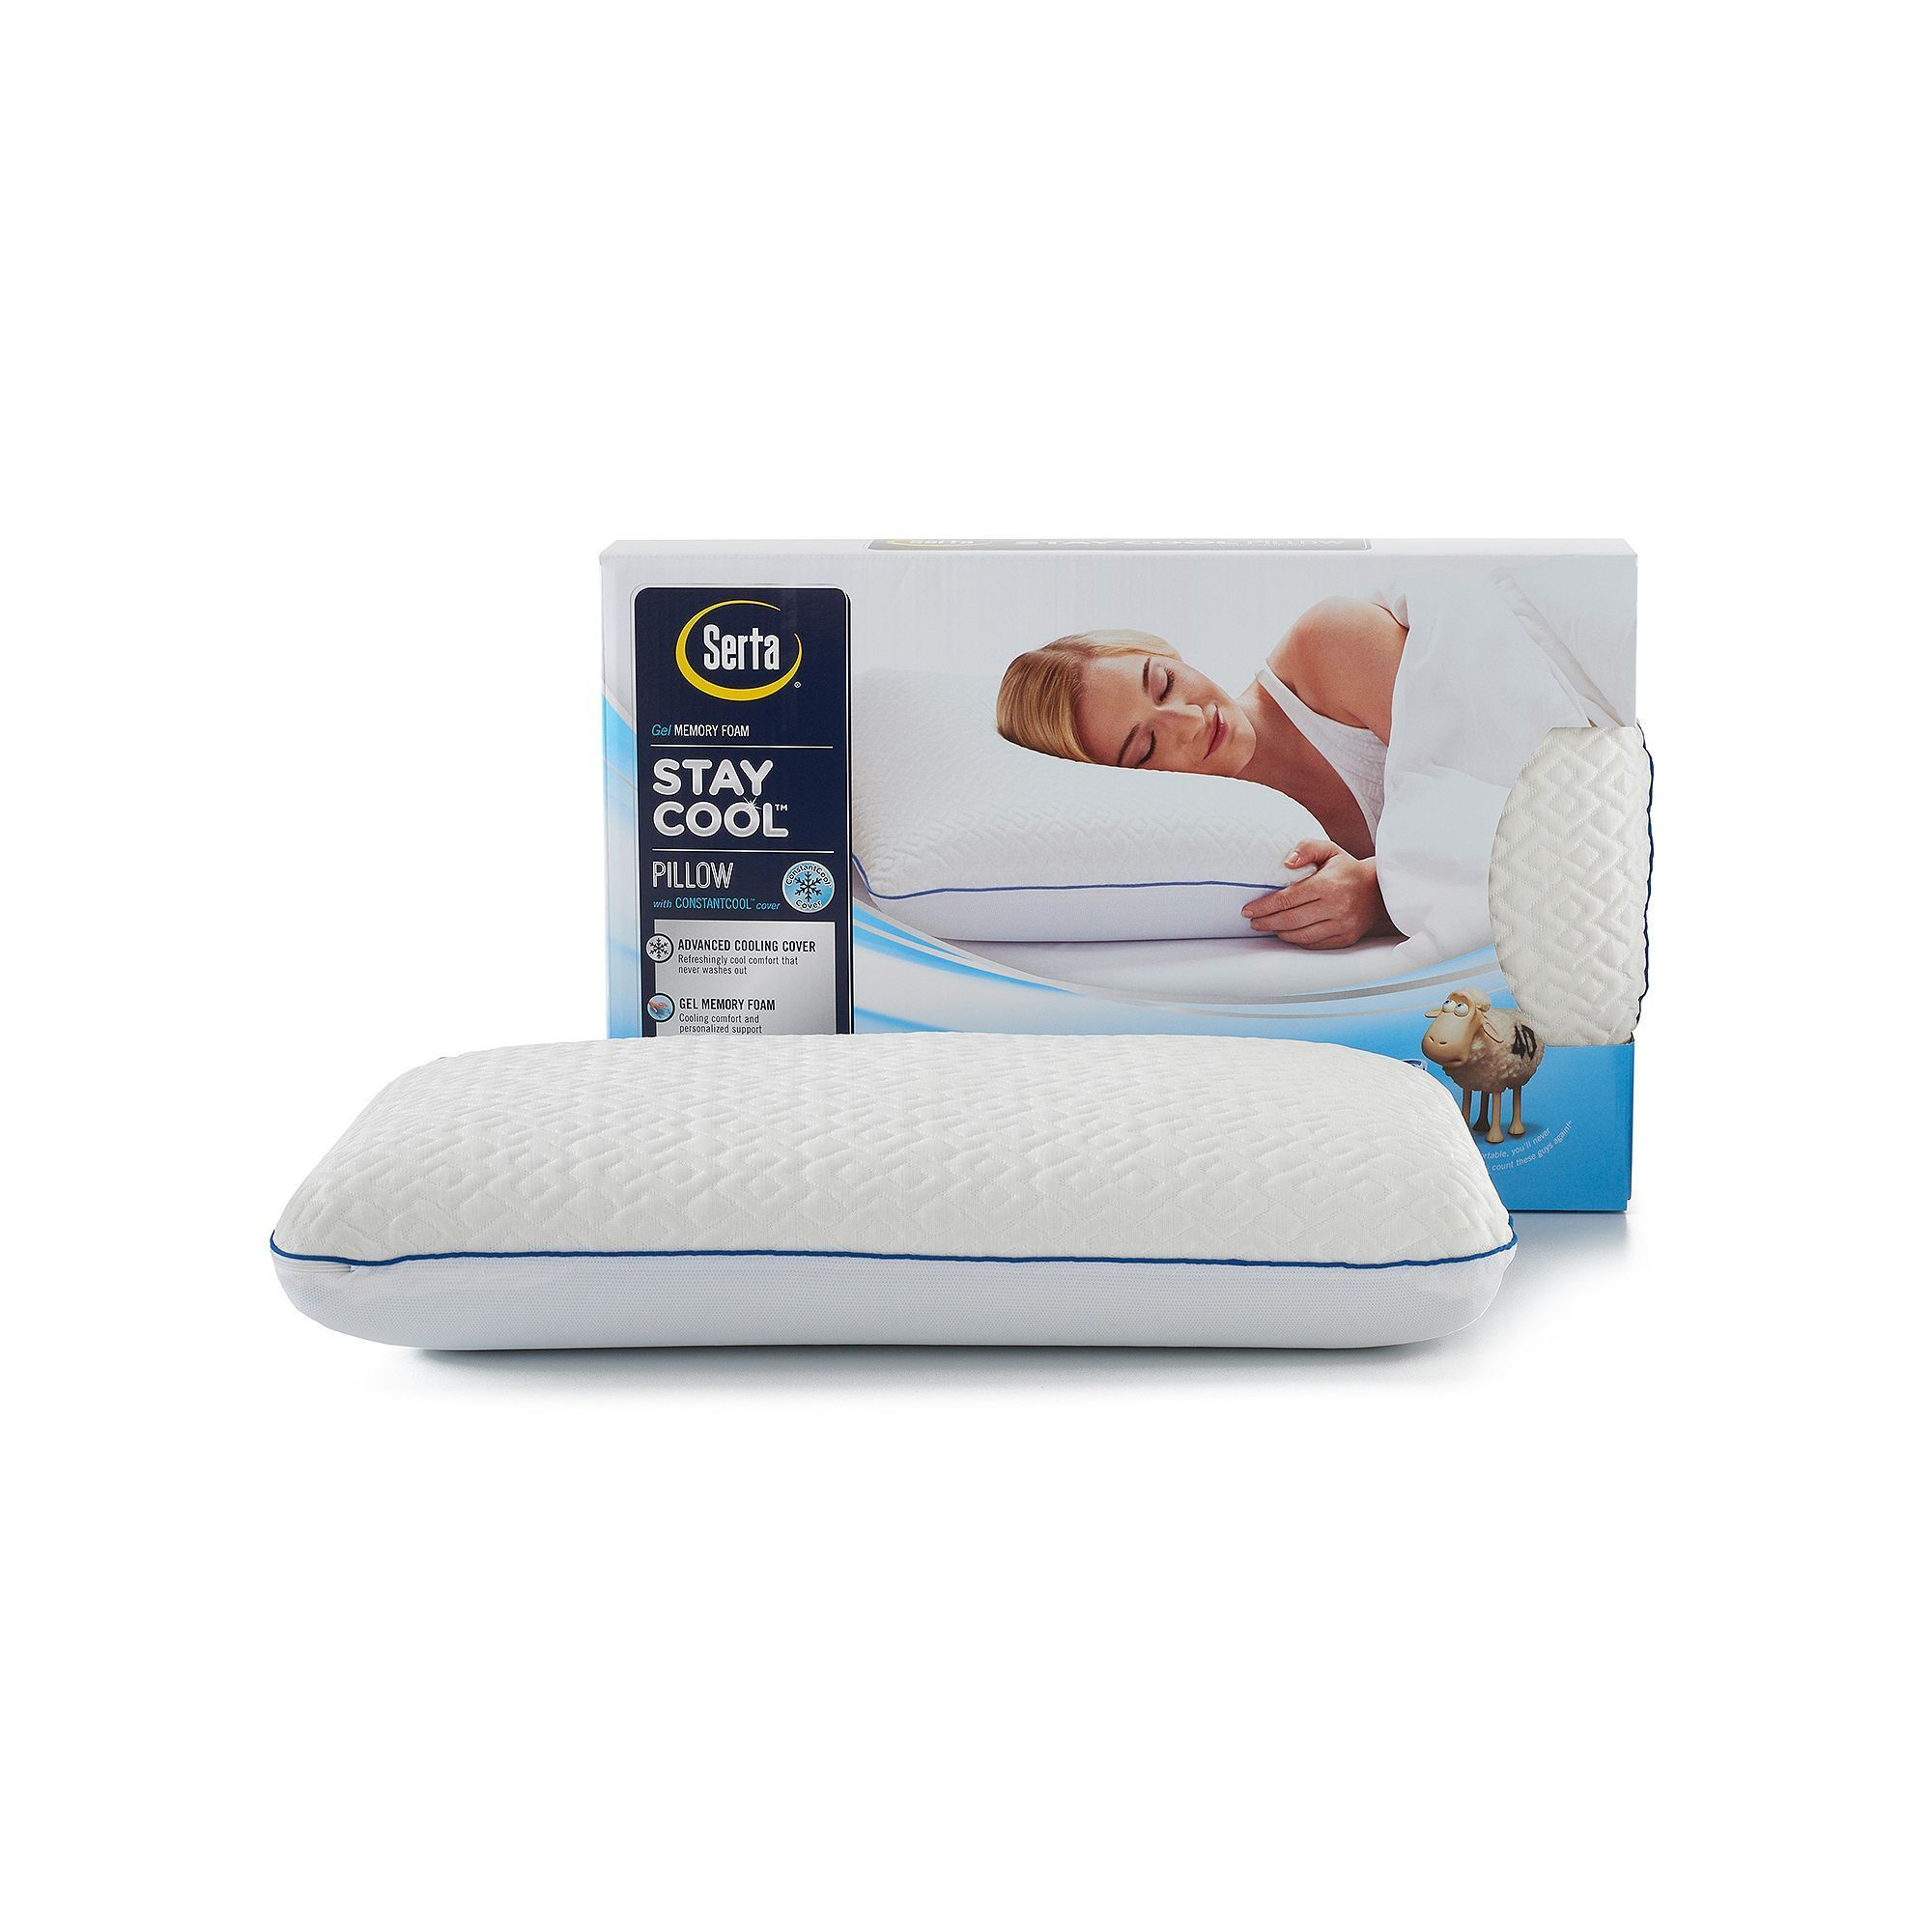 pillow amp positioners design bed cooling foam ne serta picture memoryfil fresh of beautiful luxury pillows memory biosense